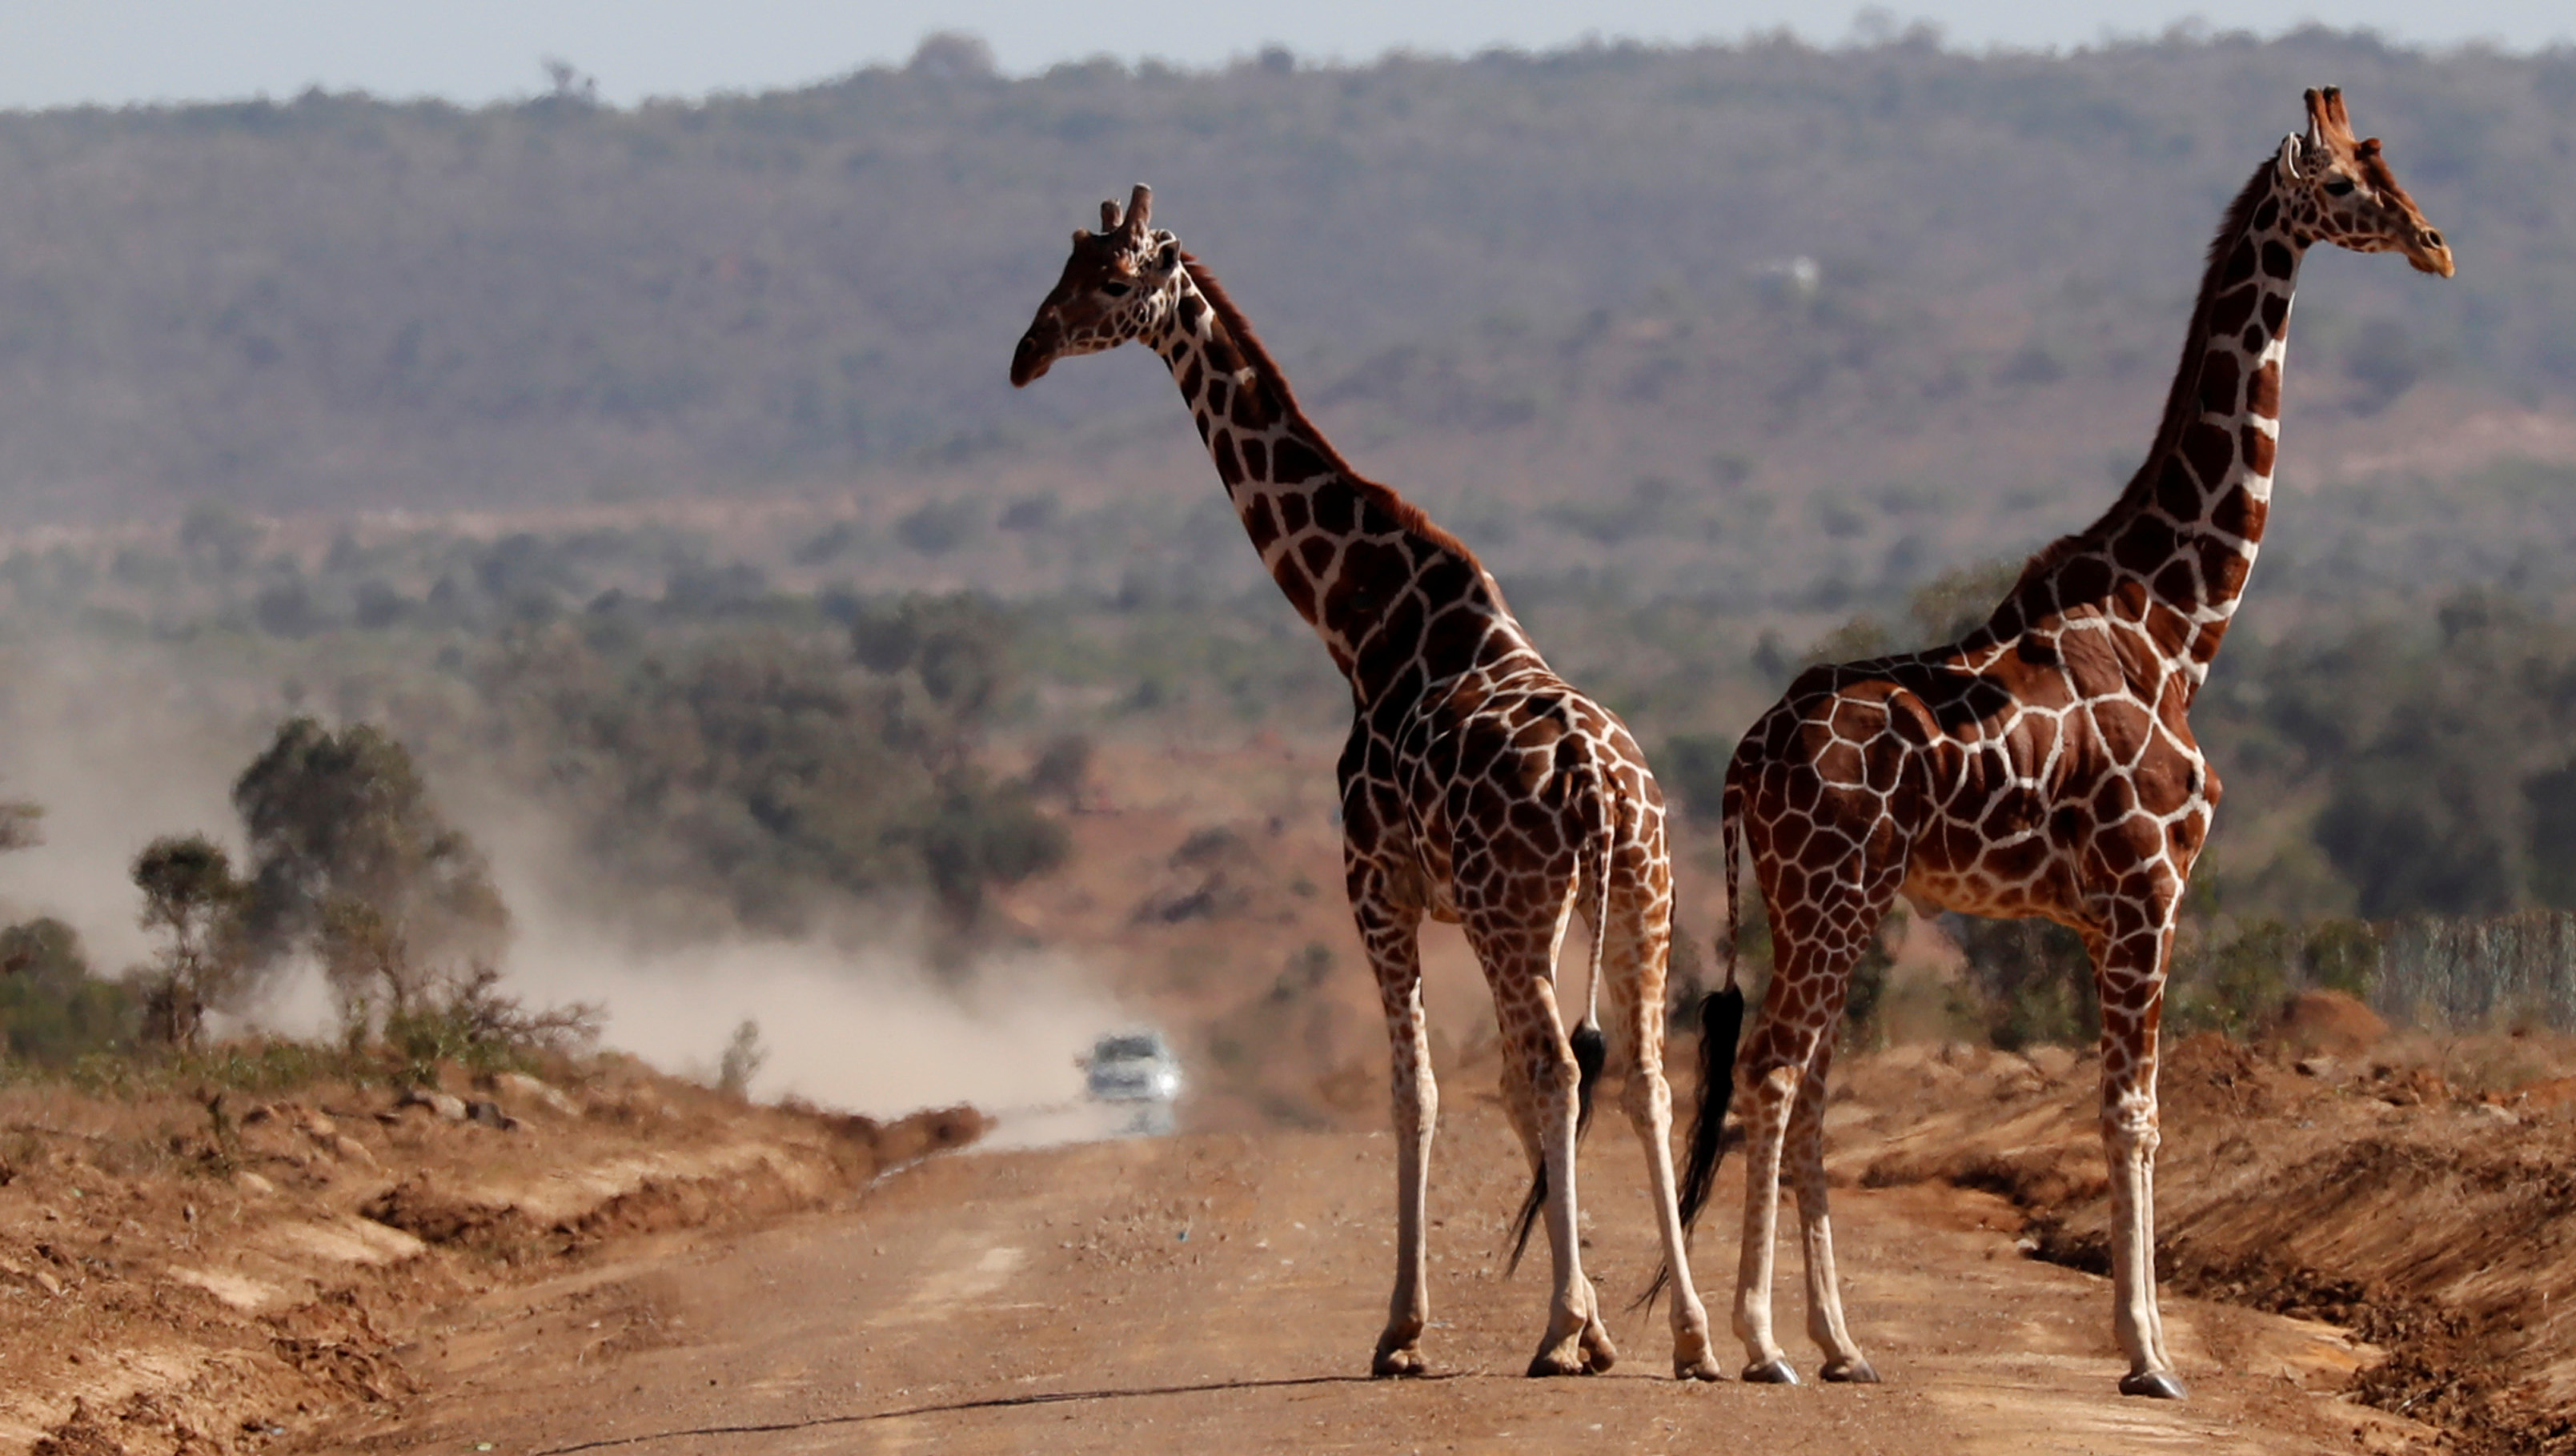 Giraffes stand on a road in Mugui Conservancy, Kenya,  February  12, 2017. REUTERS/Goran Tomasevic - RTSY8U1